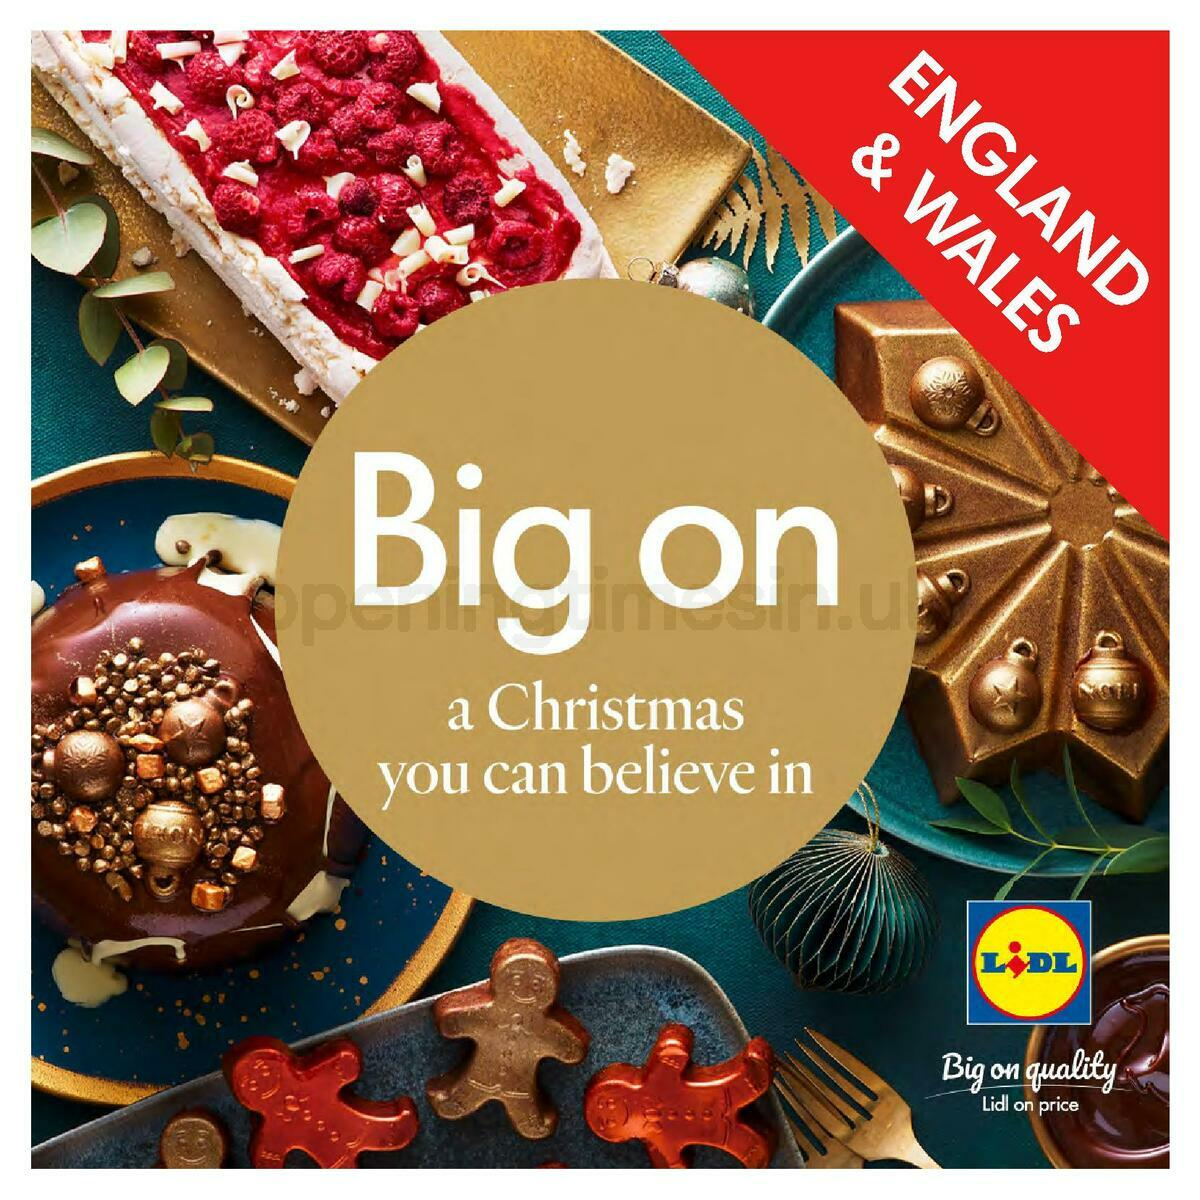 LIDL Christmas Magazine England and Wales Offers from November 10